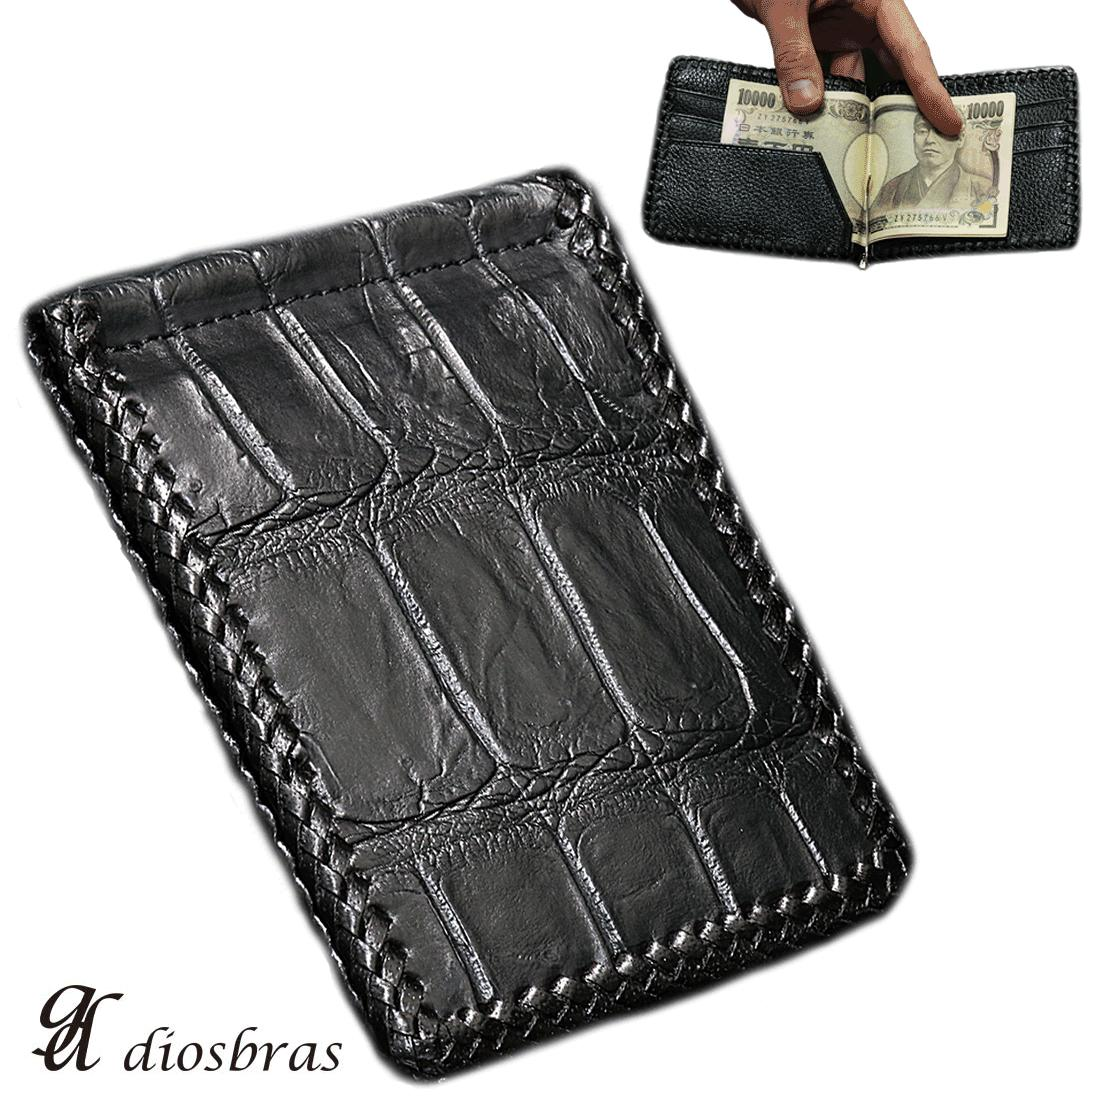 Leather crocodile alligator leather alligator Caiman species money clip wallet money clip two fold purse wallet card (put on card) with short wallet ...